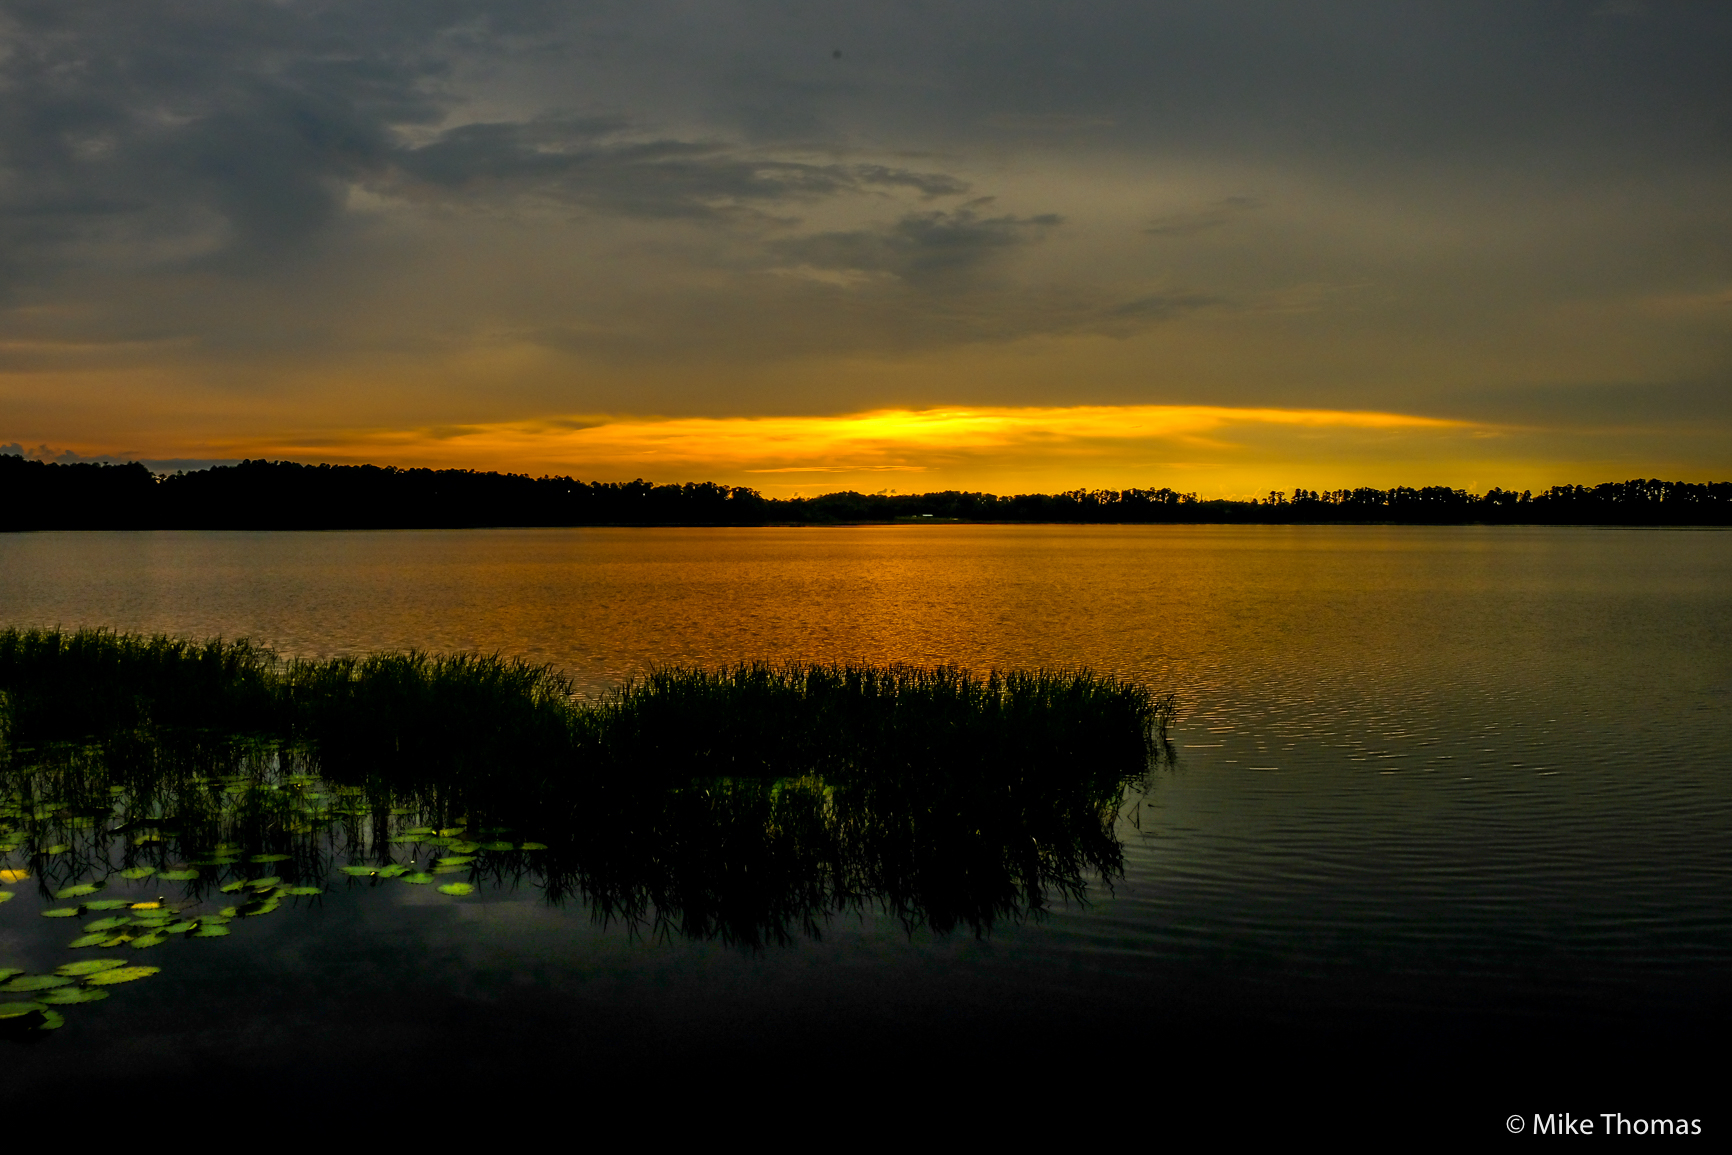 nature, sunset, florida, rain, thunderstorm, lake louisa state park, wildlife